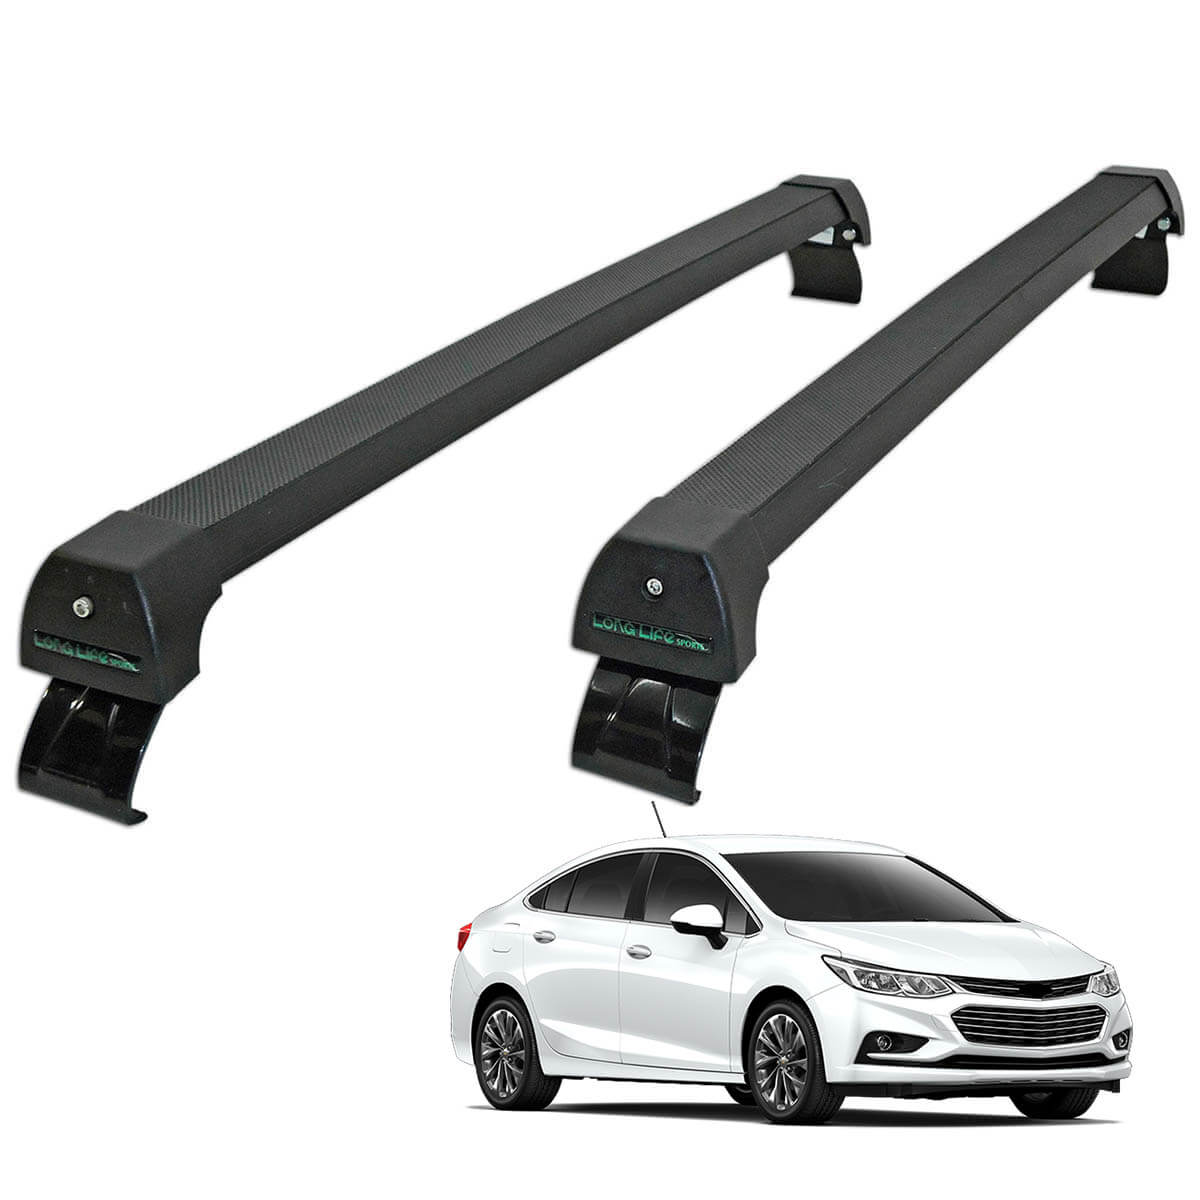 Rack de teto Novo Cruze sedan 2017 Long Life Sports preto